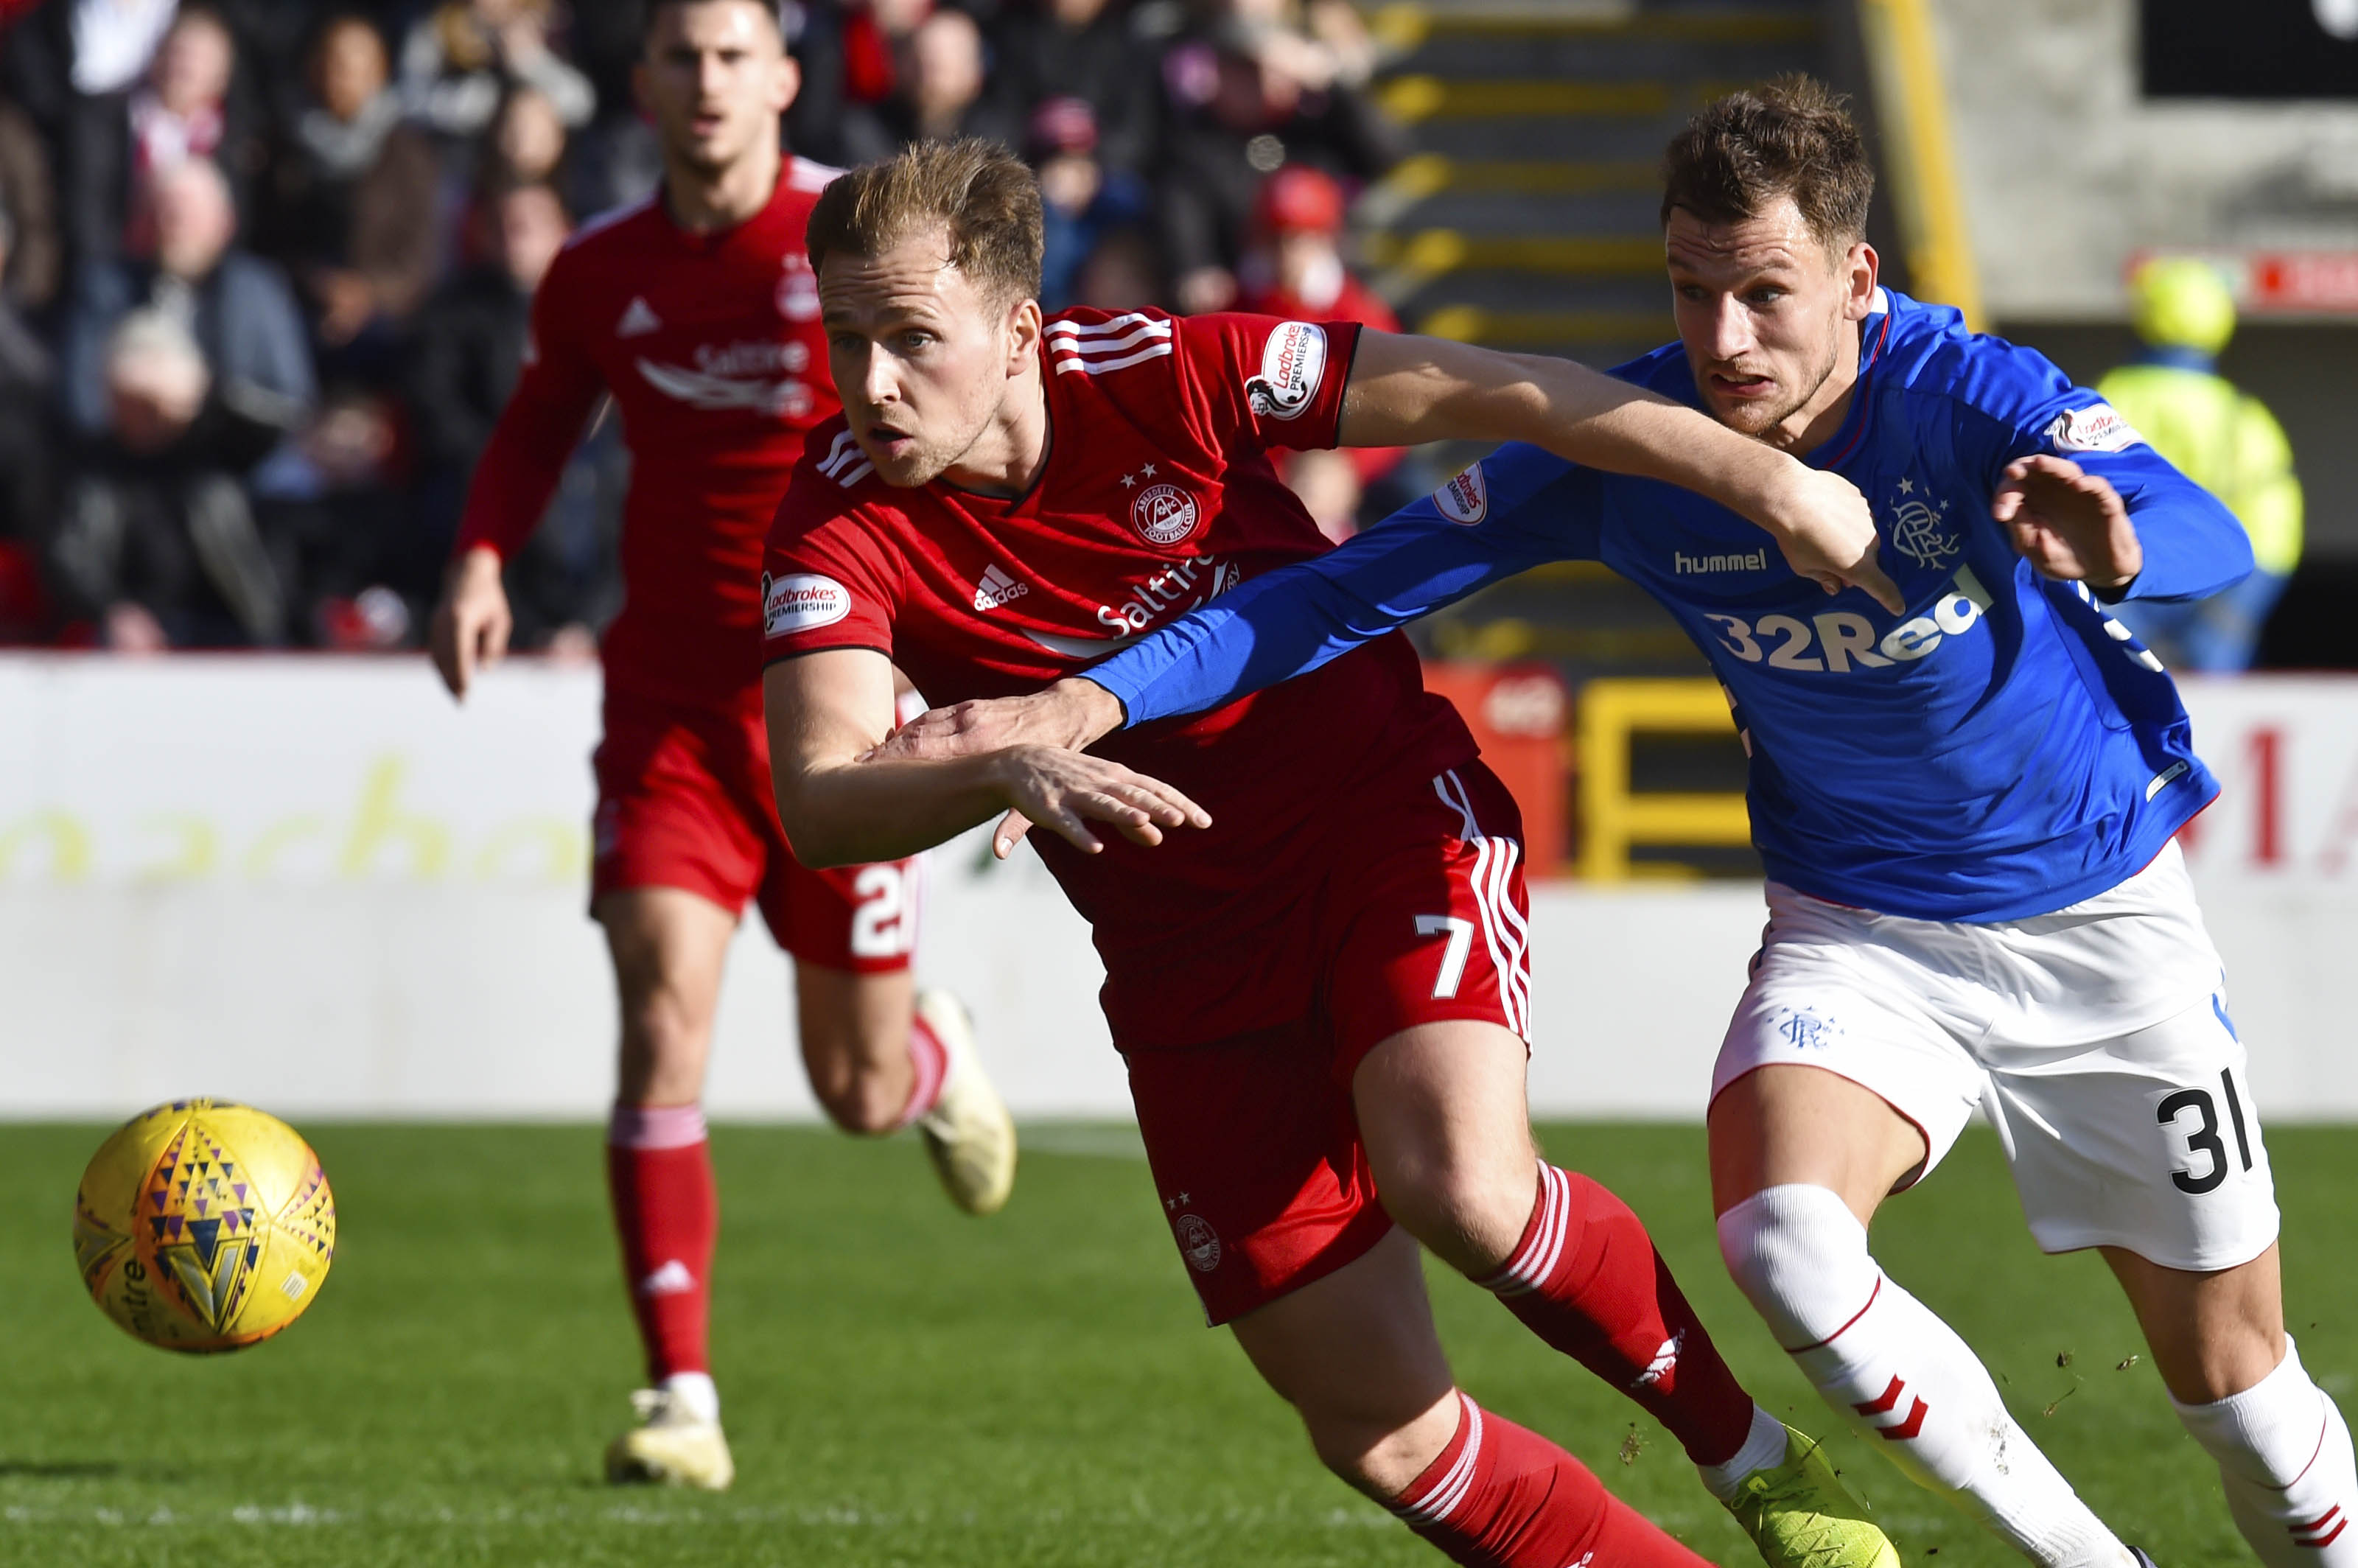 Aberdeen's Greg Stewart, left, competes with Rangers' Borna Barisic.